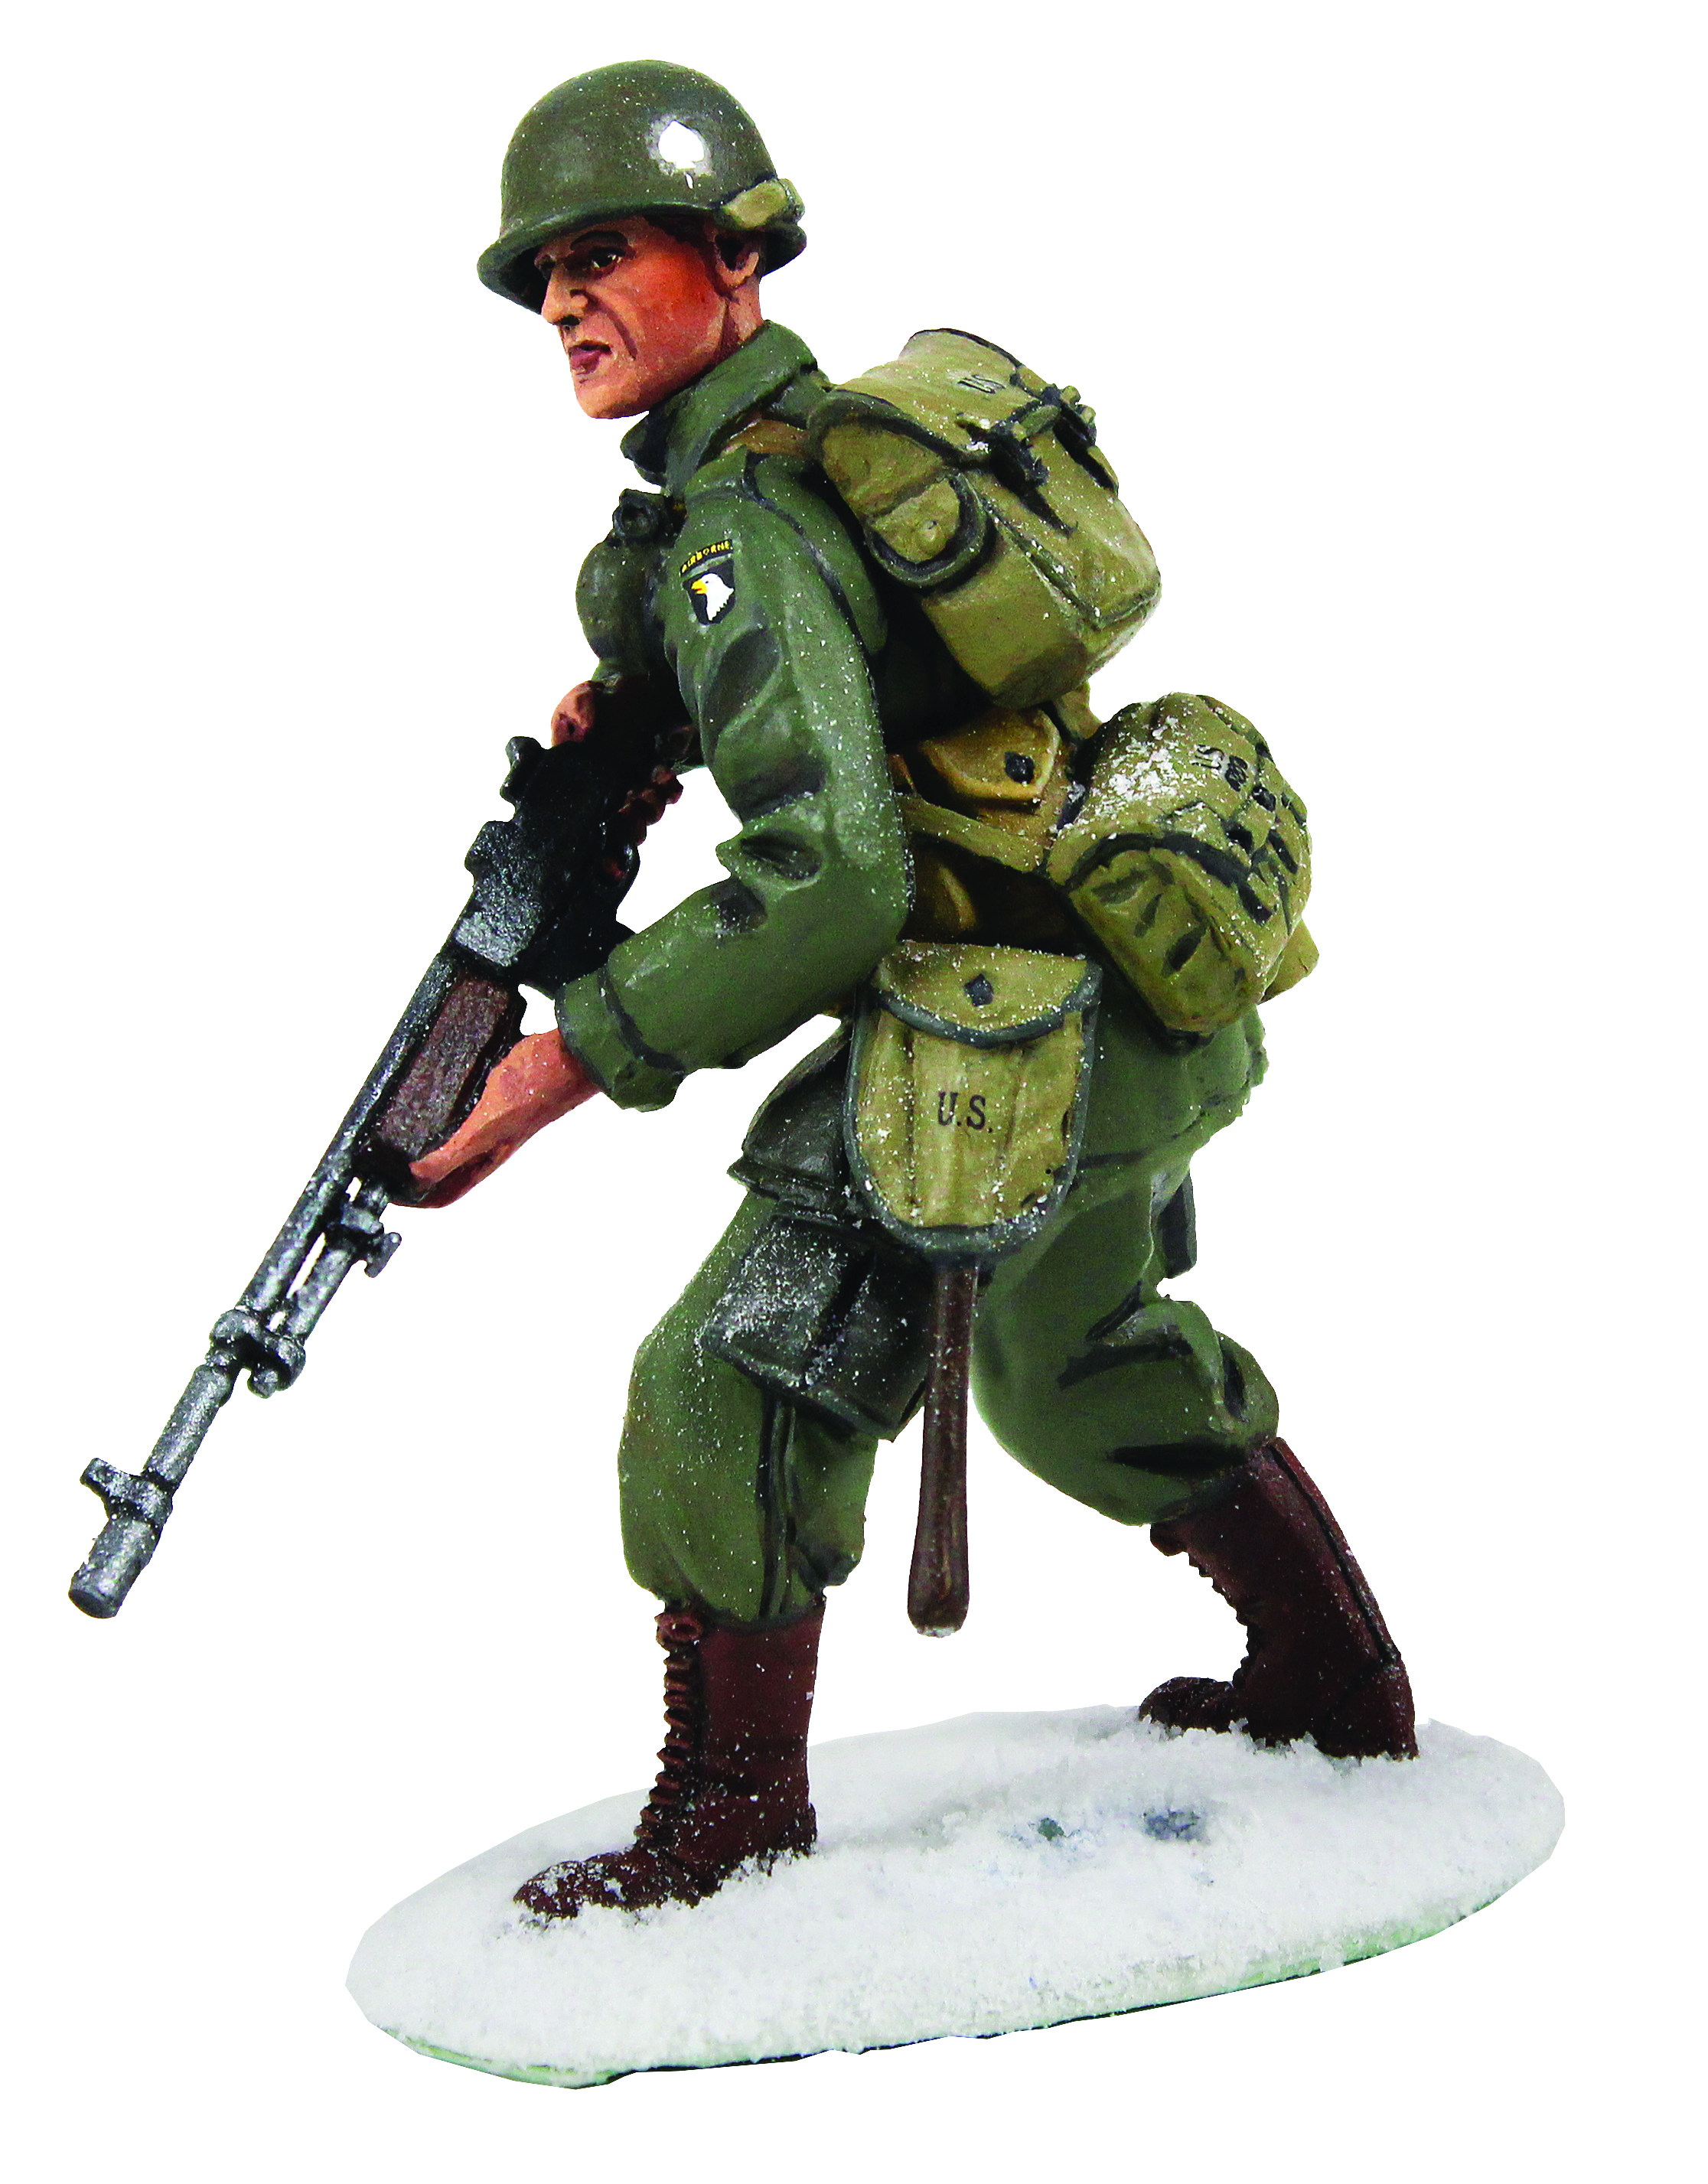 U.S 101st Airborne Infantry in M-43 Jacket Advancing with BAR, Winter 1944-45 - 1 Piece Set in Clamshell Pack